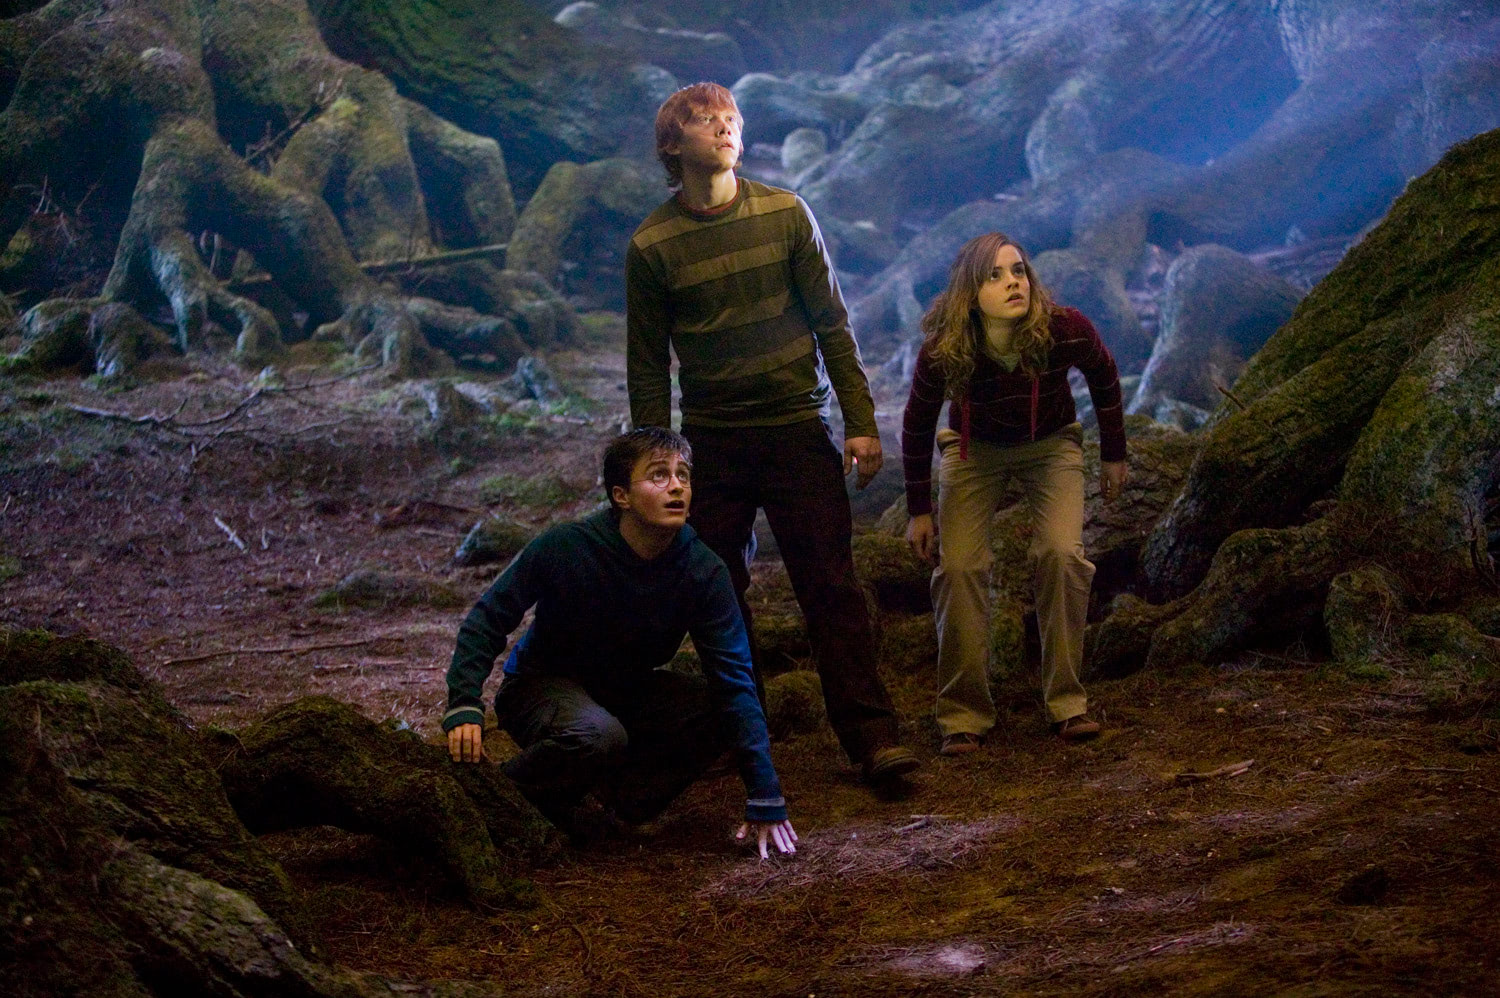 Harry, Ron and Hermione in the Forbidden Forest